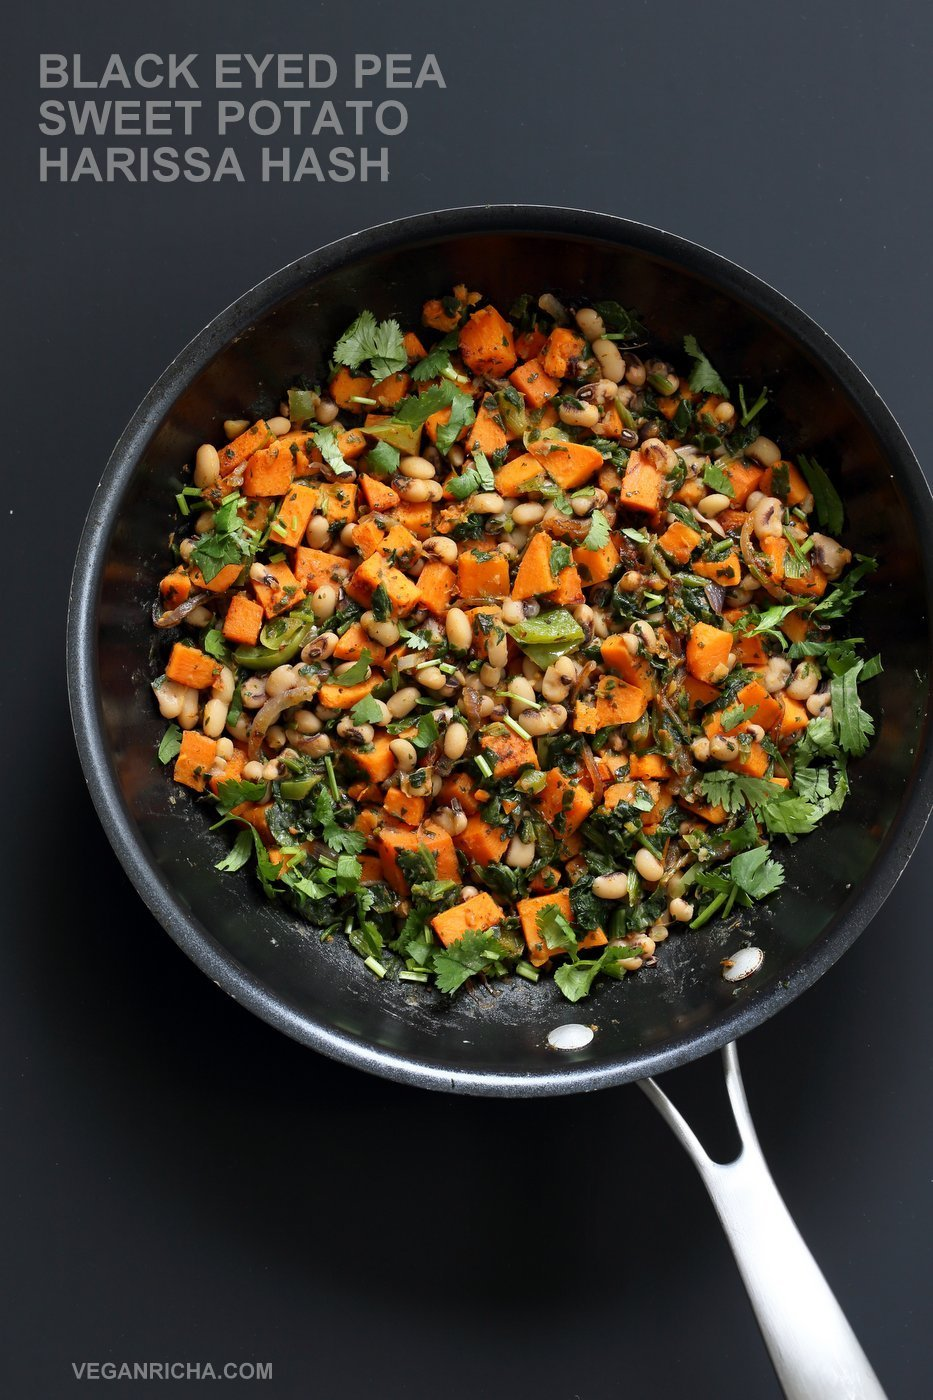 Bring in the new year with this plentiful Black eyed pea and Sweet Potato Hash with Harissa Spice. Ready in 20 minutes. 1 Pot. Serve over toast with a creamy dressing or avocado. #Vegan #Glutenfree #Soyfree #Recipe #veganricha | VeganRicha.com